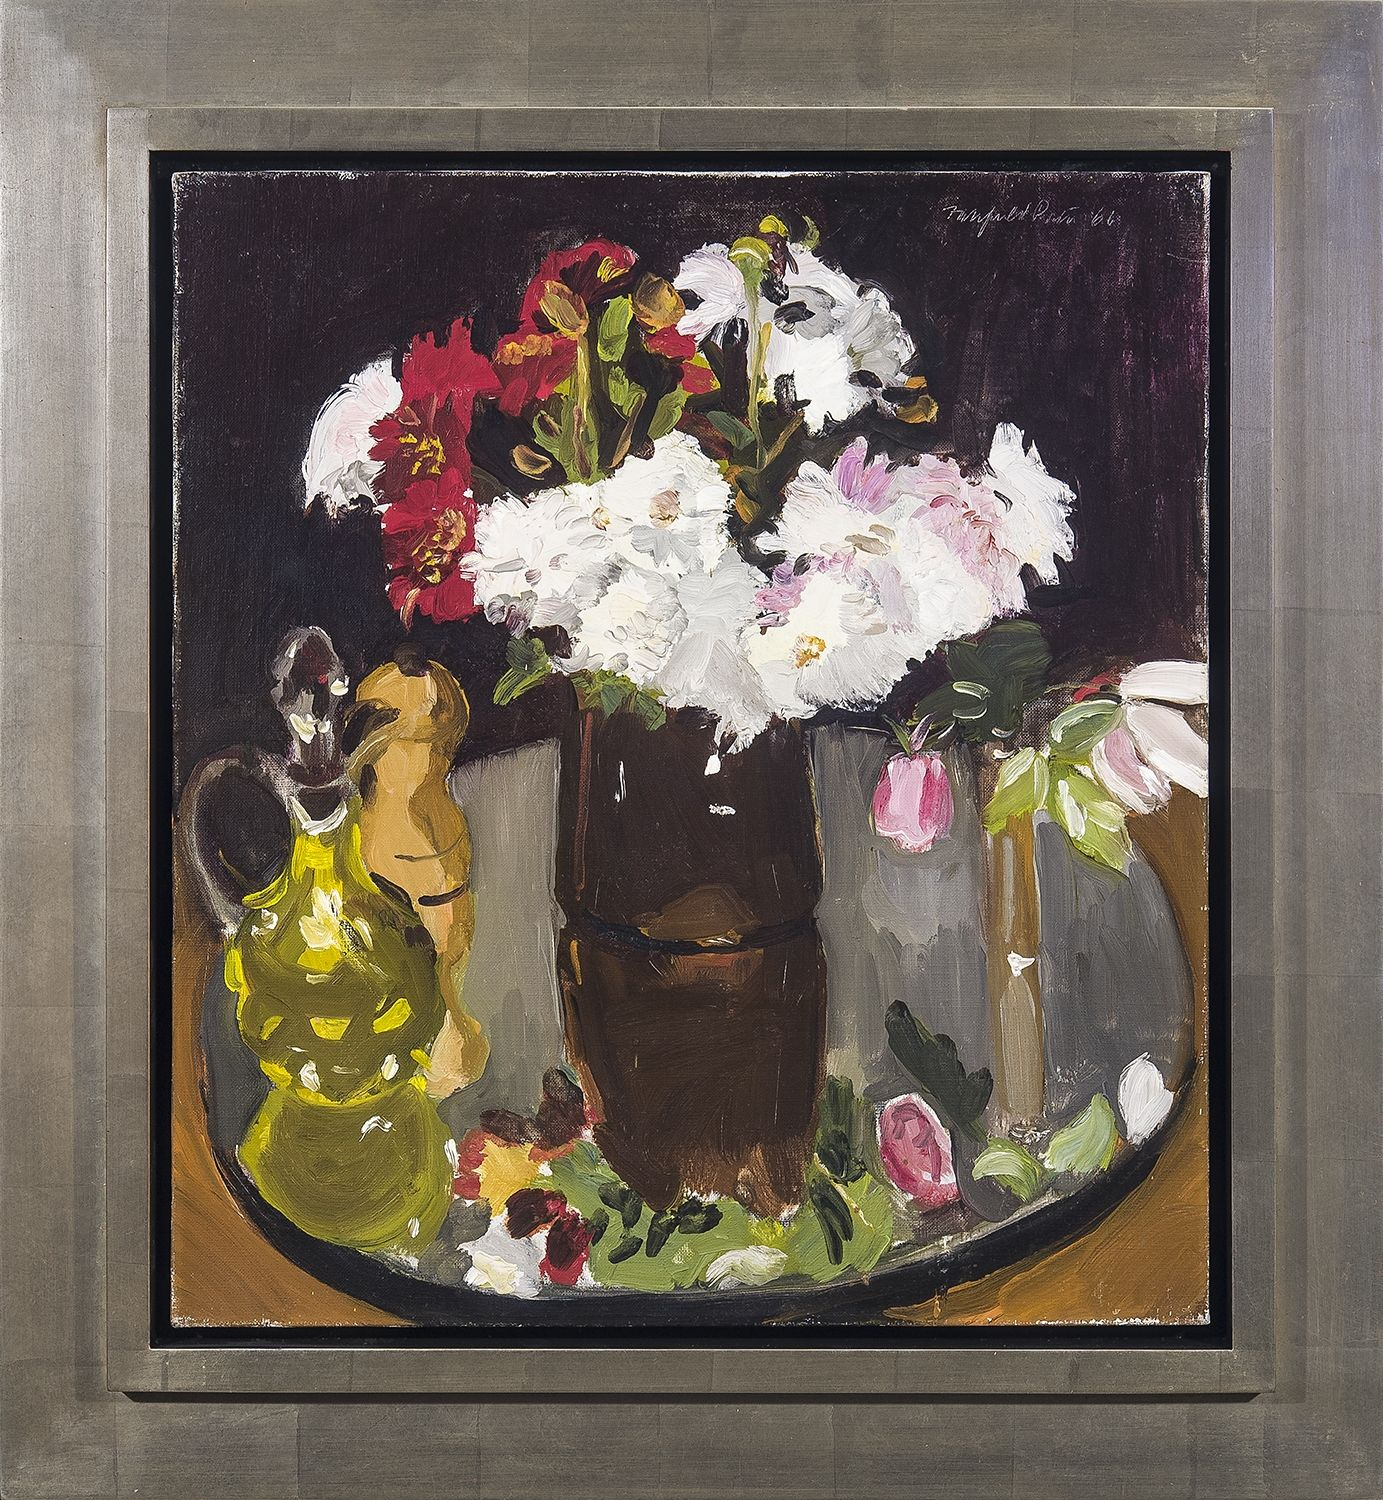 Fairfield Porter, Still Life of Flowers on a Mirror, 1966